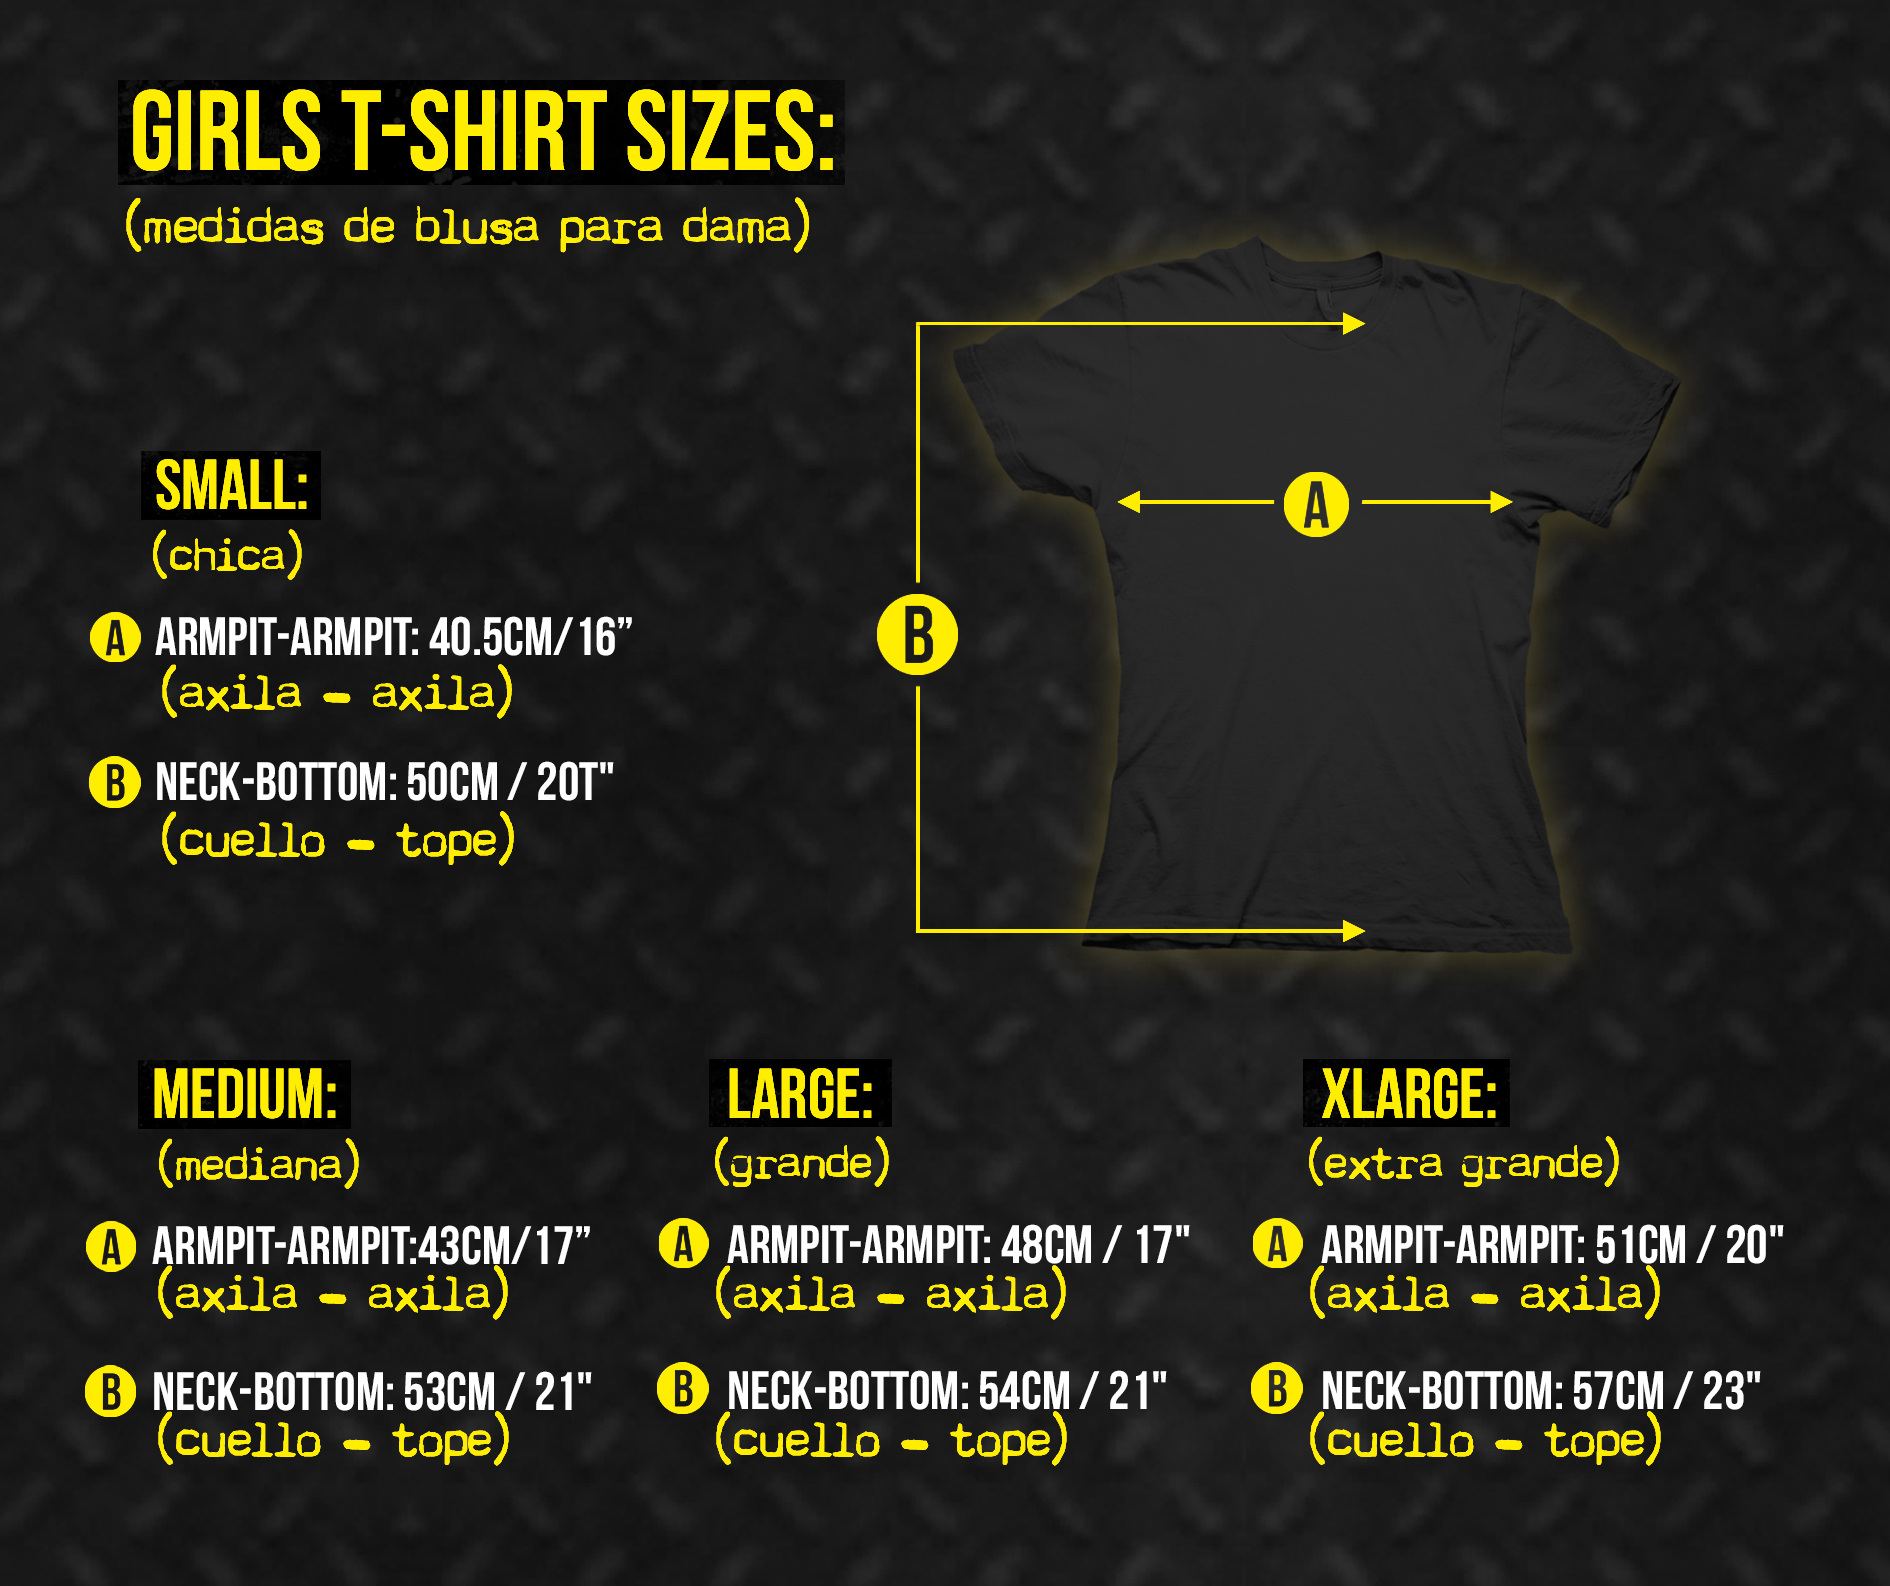 girls-shirt-sizes-actualized666.jpg